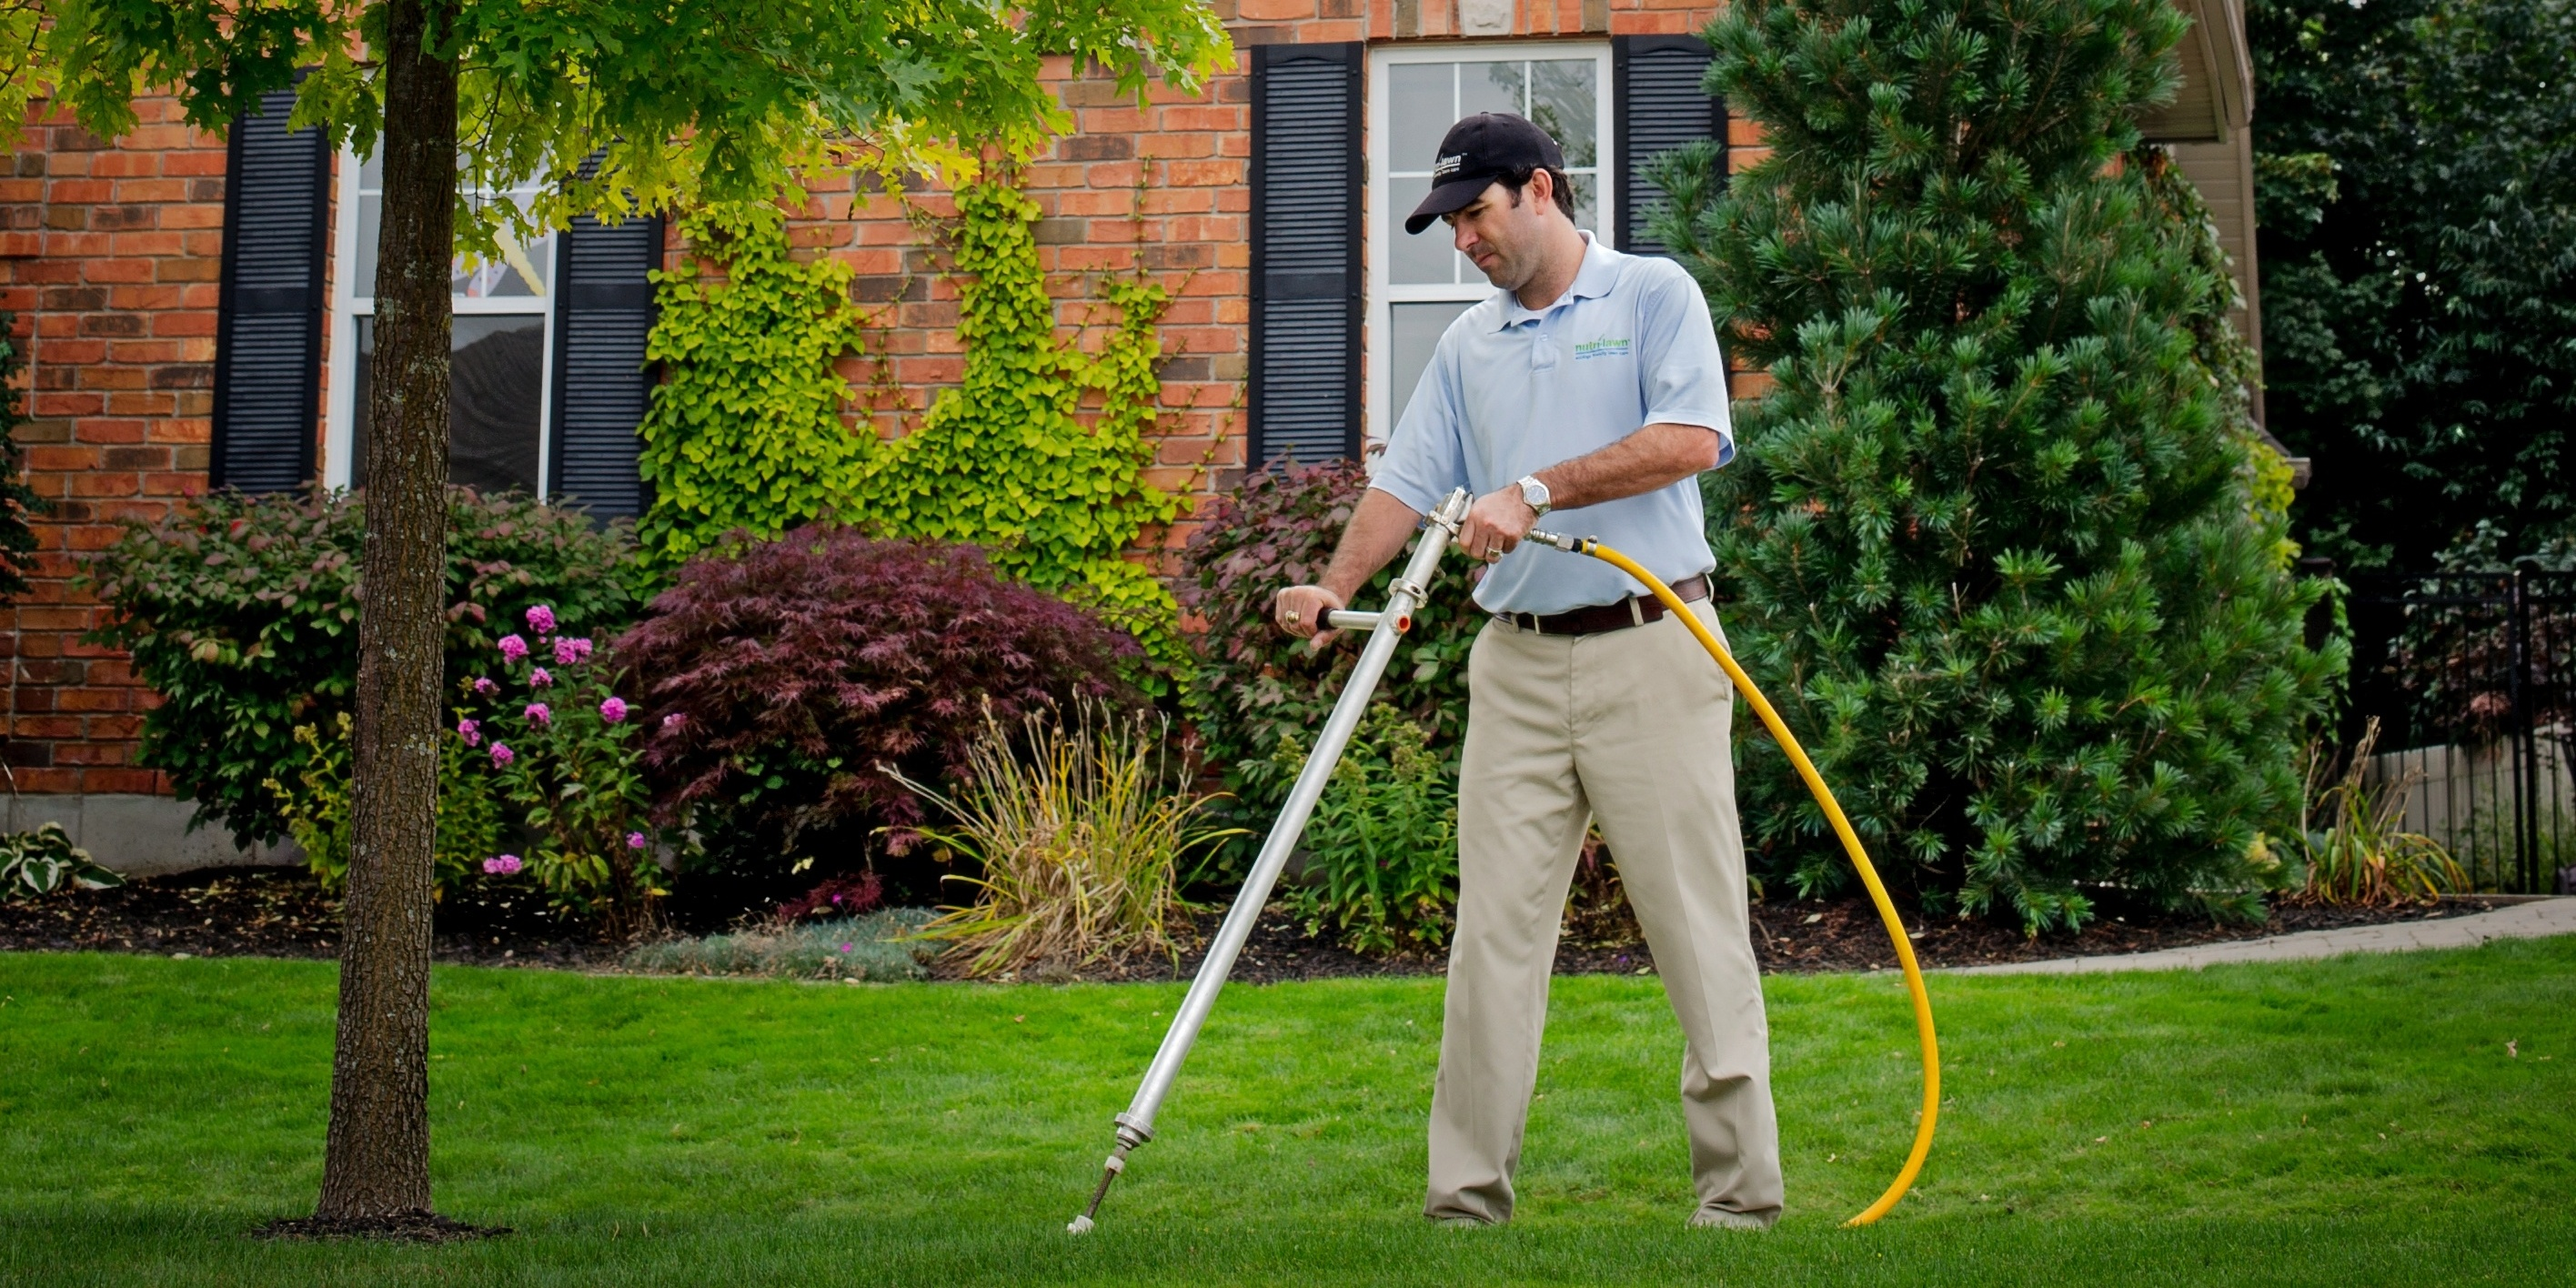 Protect your trees by fertilizing